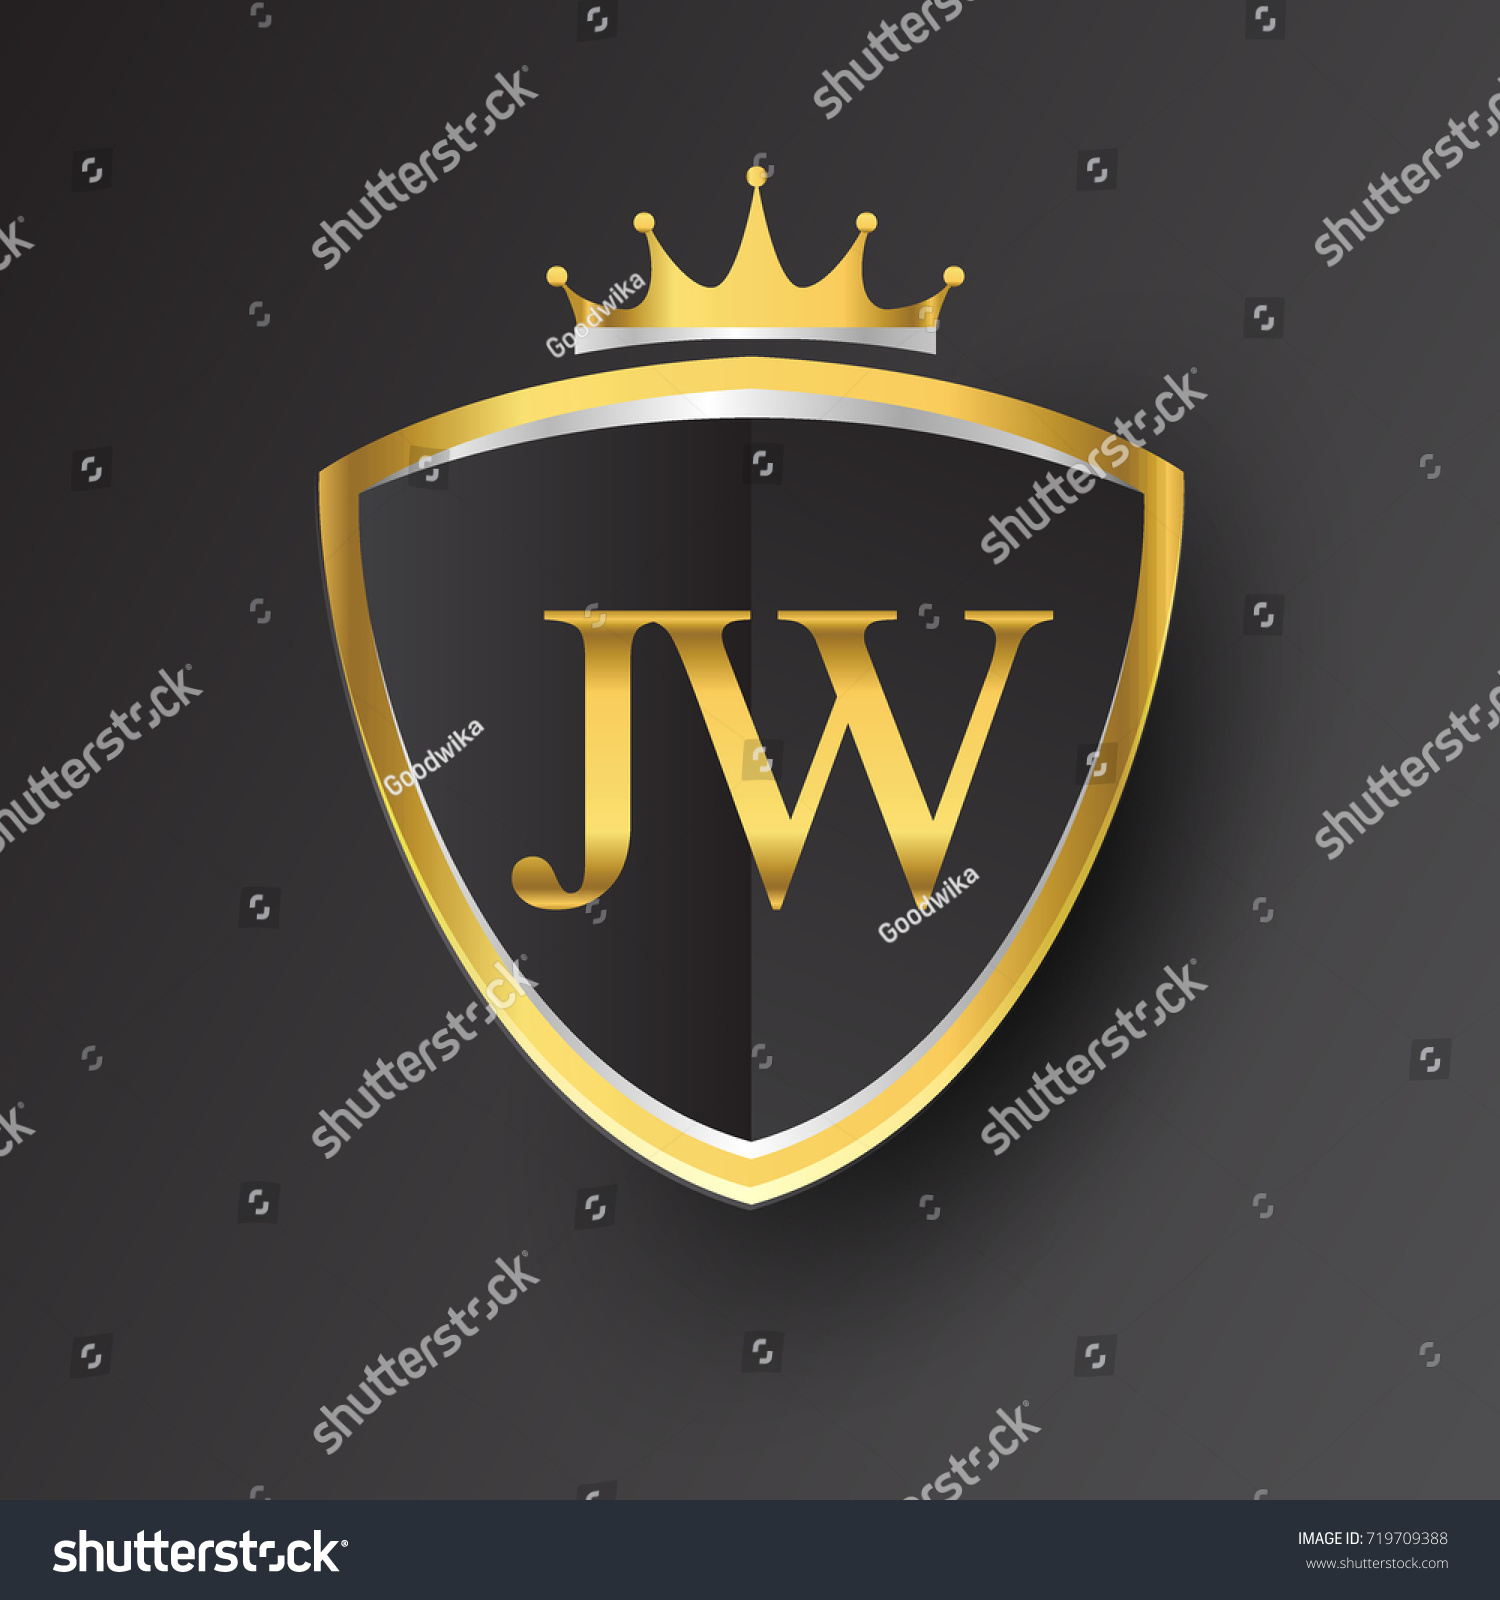 Initial Logo Letter Jw Shield Crown Stock Vector Royalty 1500x1600